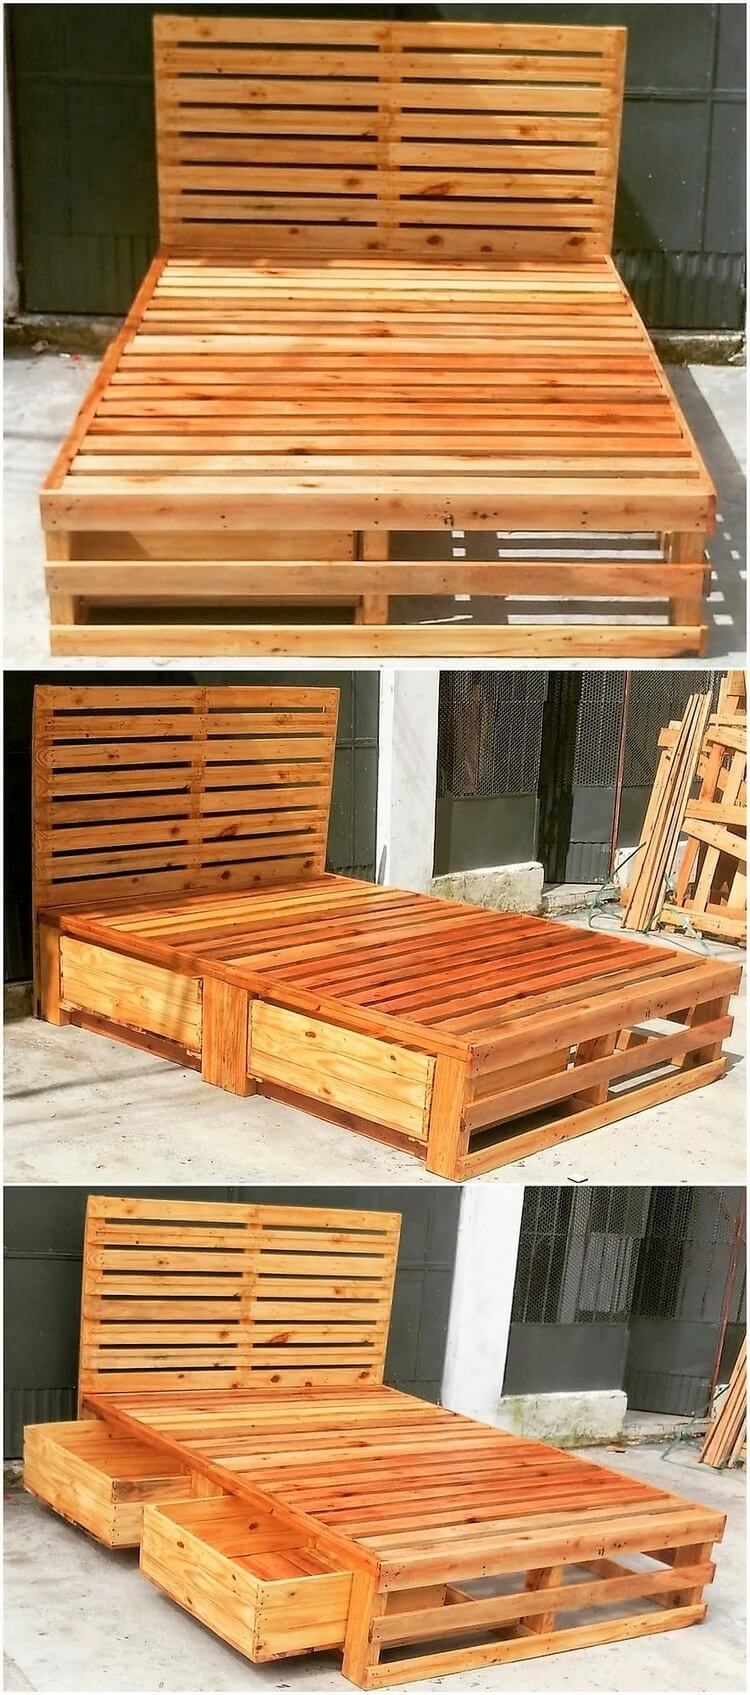 Pallet Bed with Storage Drawers